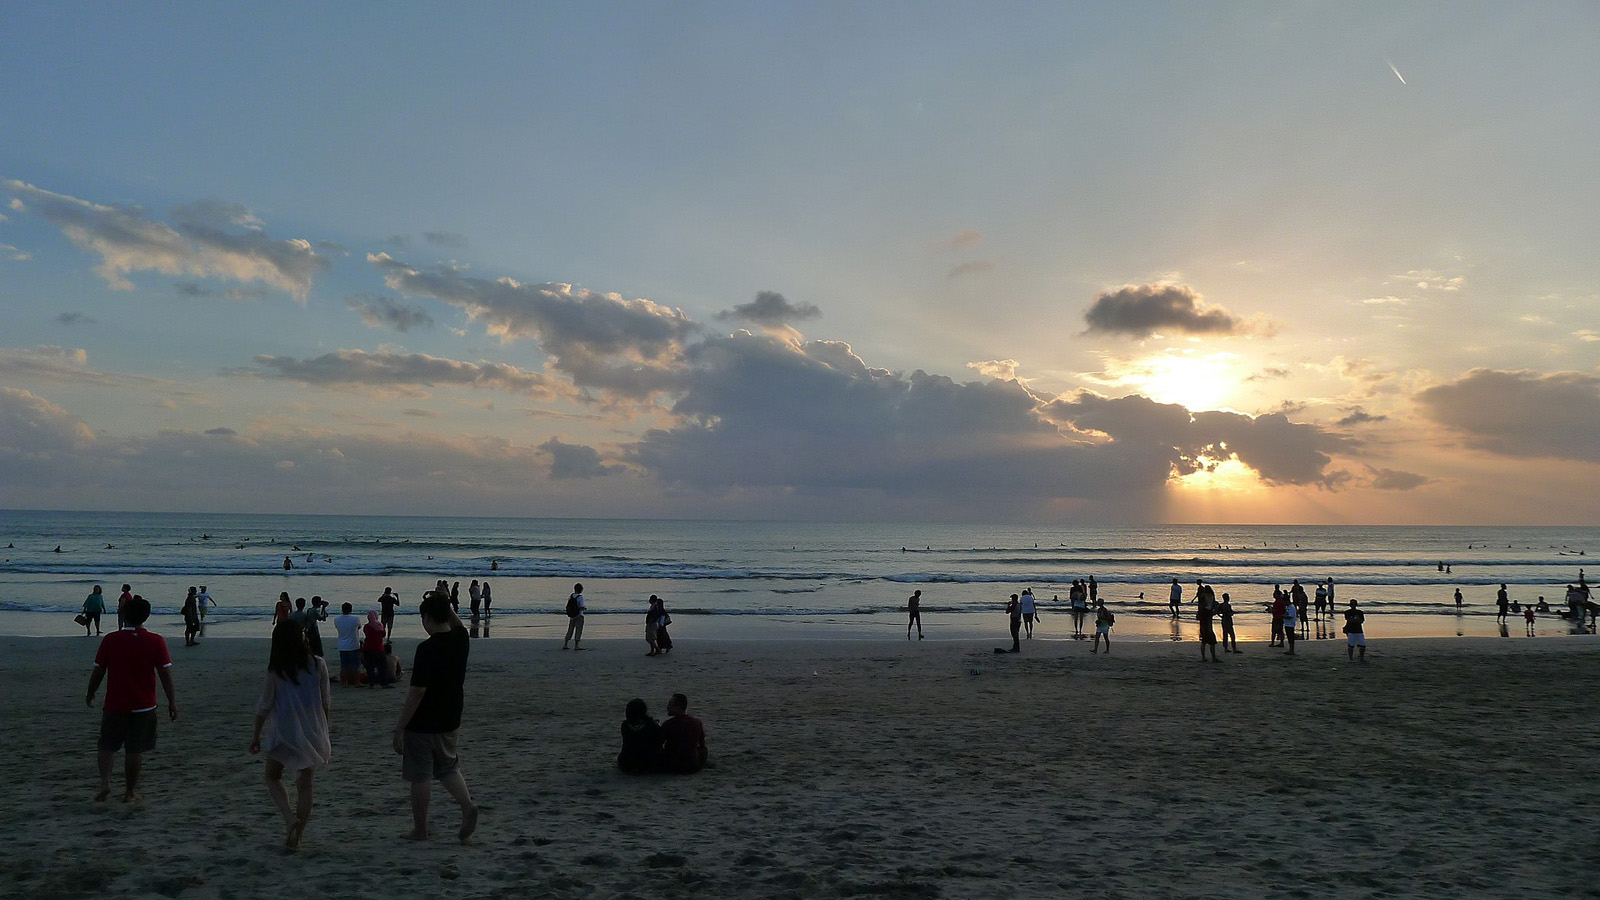 2048px-Bali_-_Sunset_at_Kuta_Beach.JPG?1537782267